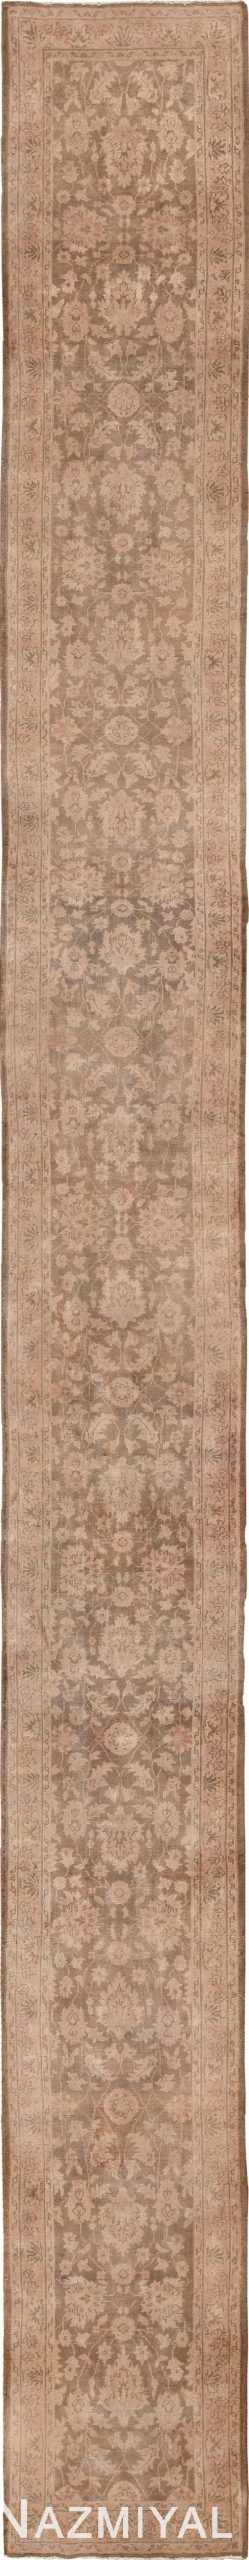 Long Vintage Turkish Sivas Runner Rug 50264 - Nazmiyal